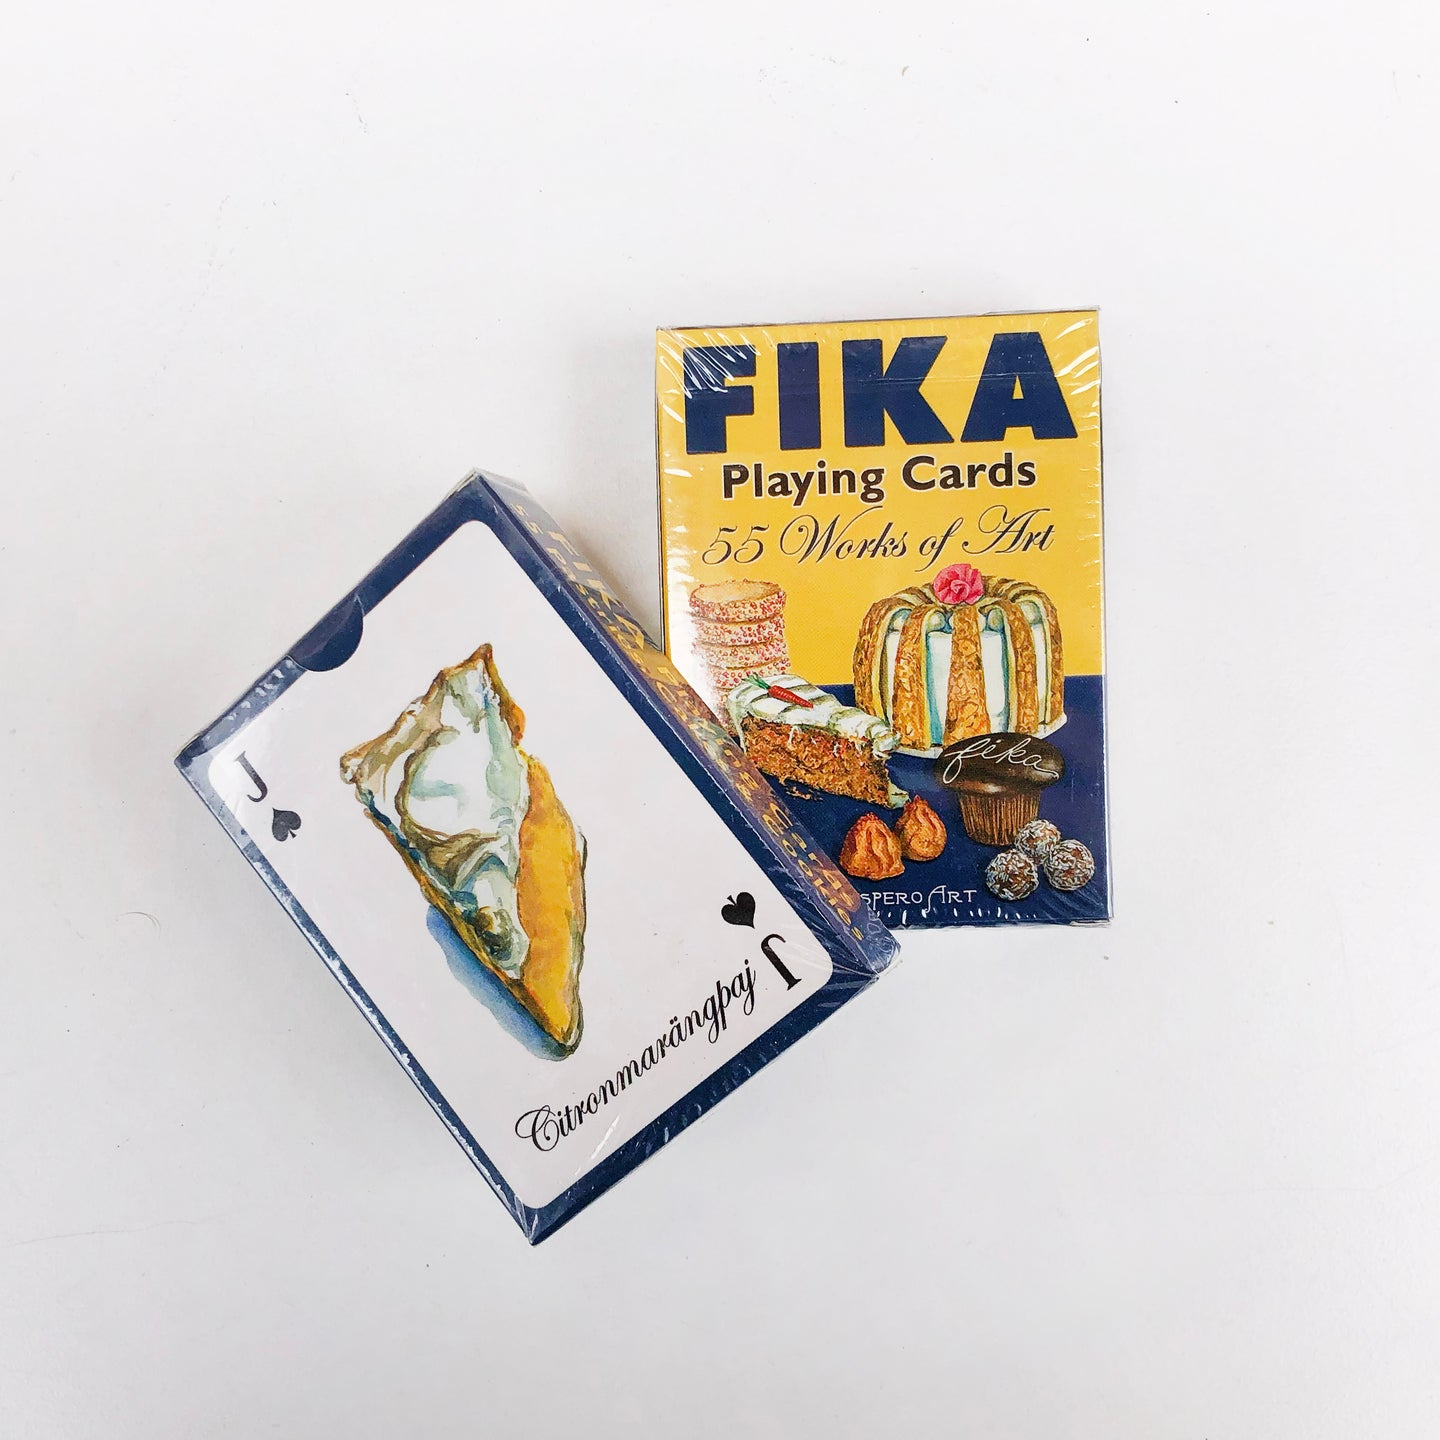 Fika Playcards